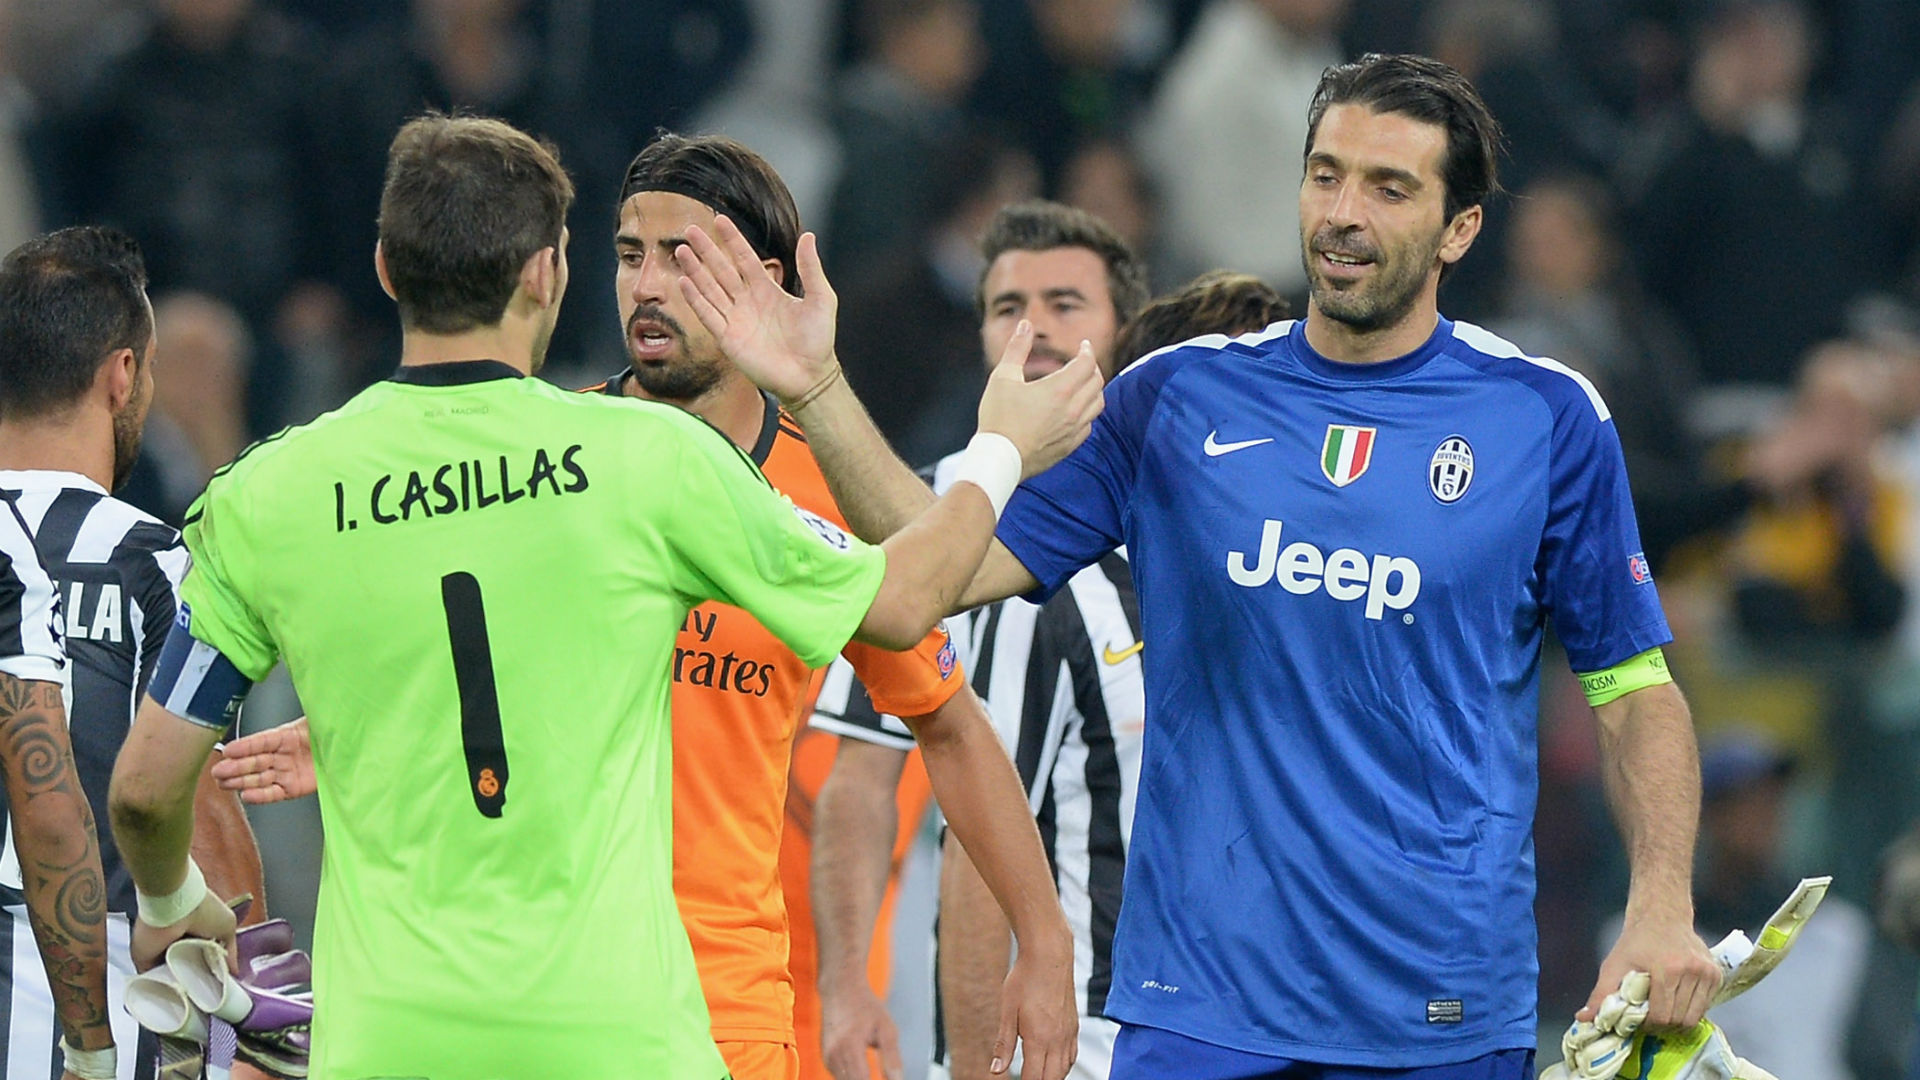 'I have always admired Casillas' - Buffon looking forward to meeting Porto's No. 1